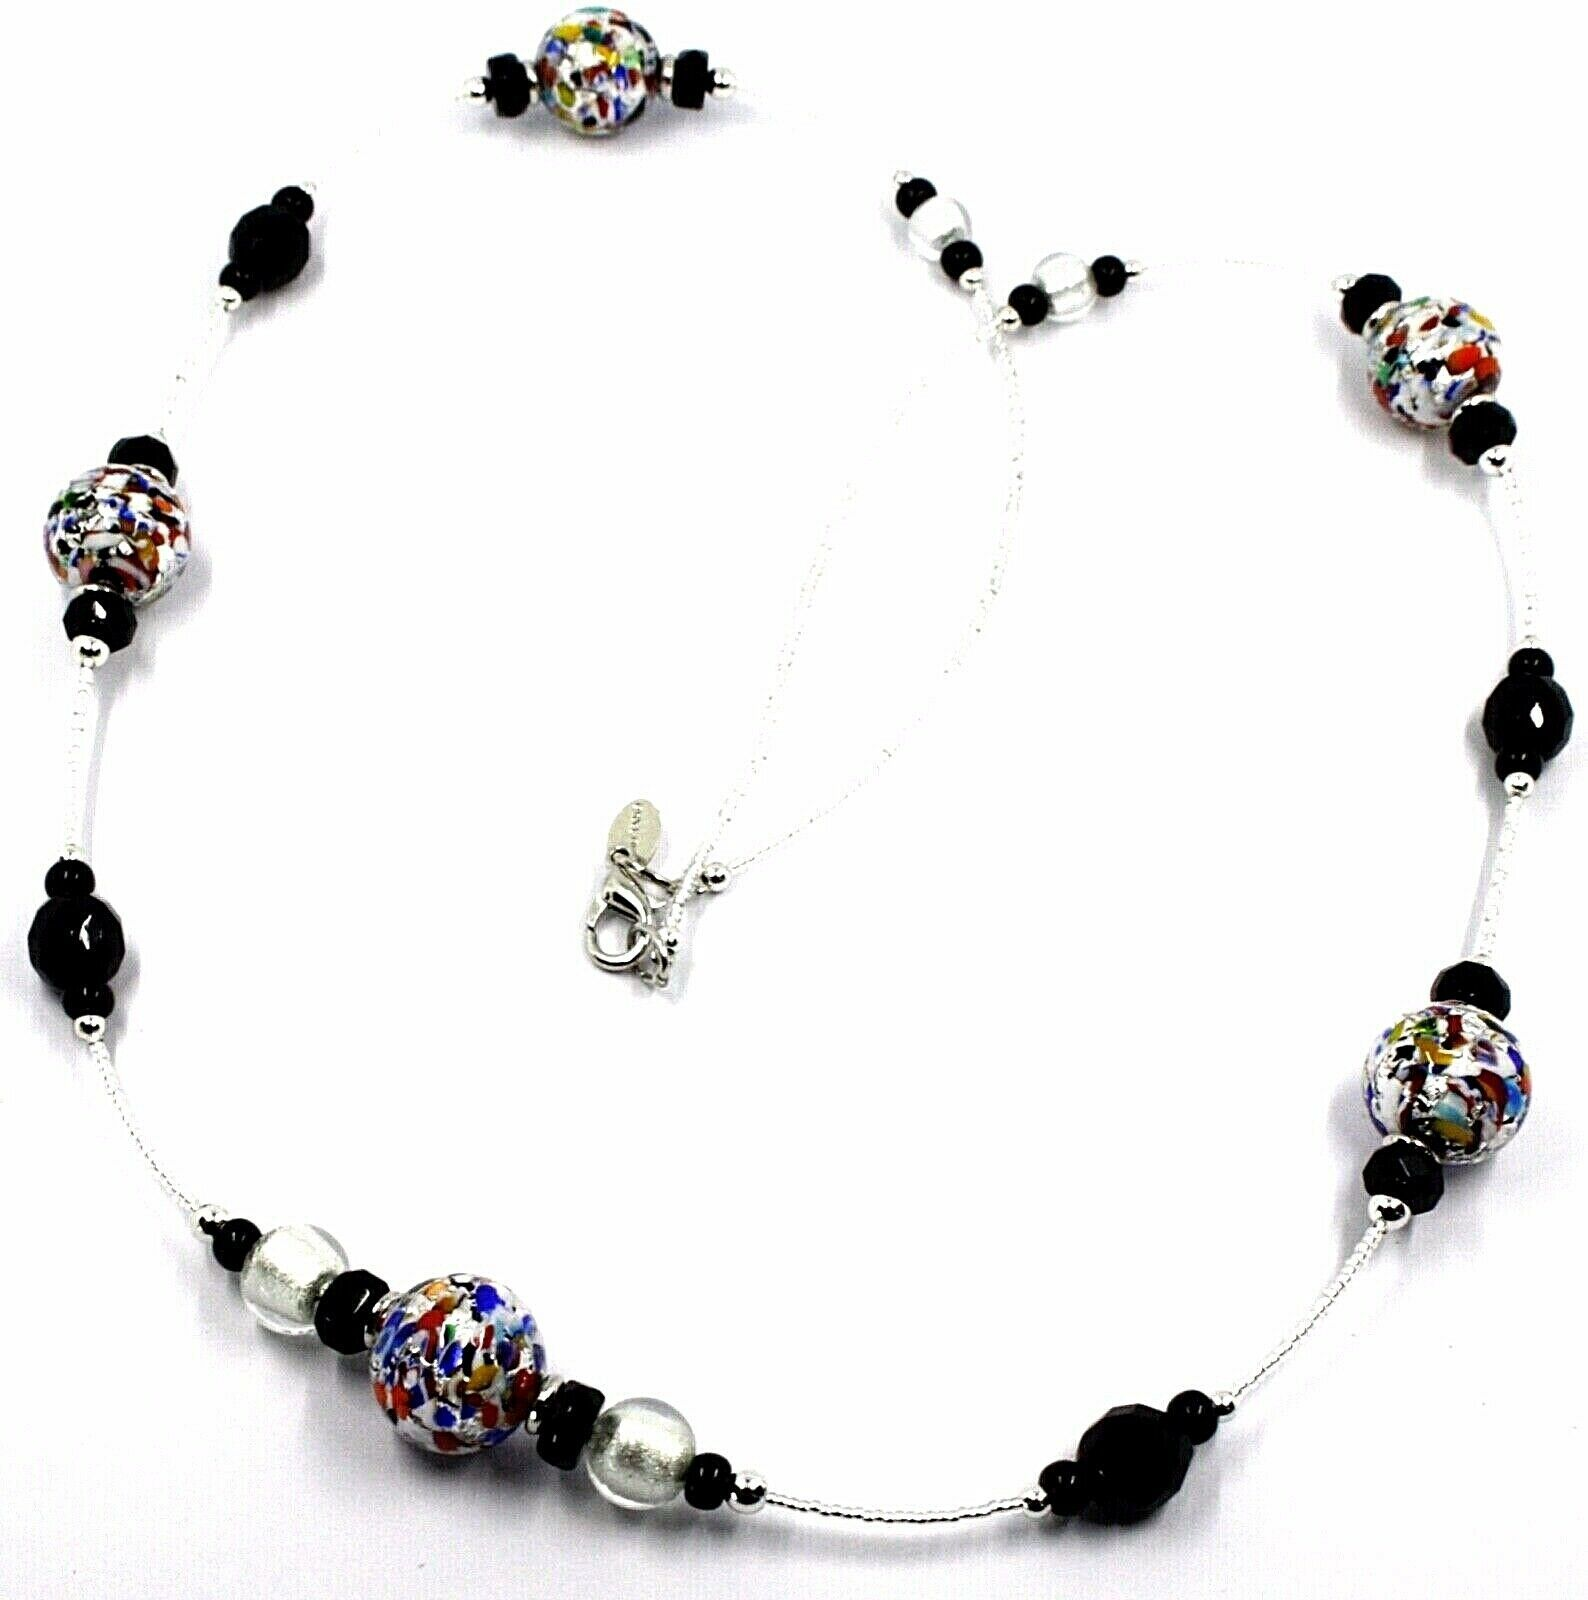 NECKLACE MACULATE LONG MULTI COLOR MURANO GLASS SPHERE, SILVER LEAF, ITALY MADE